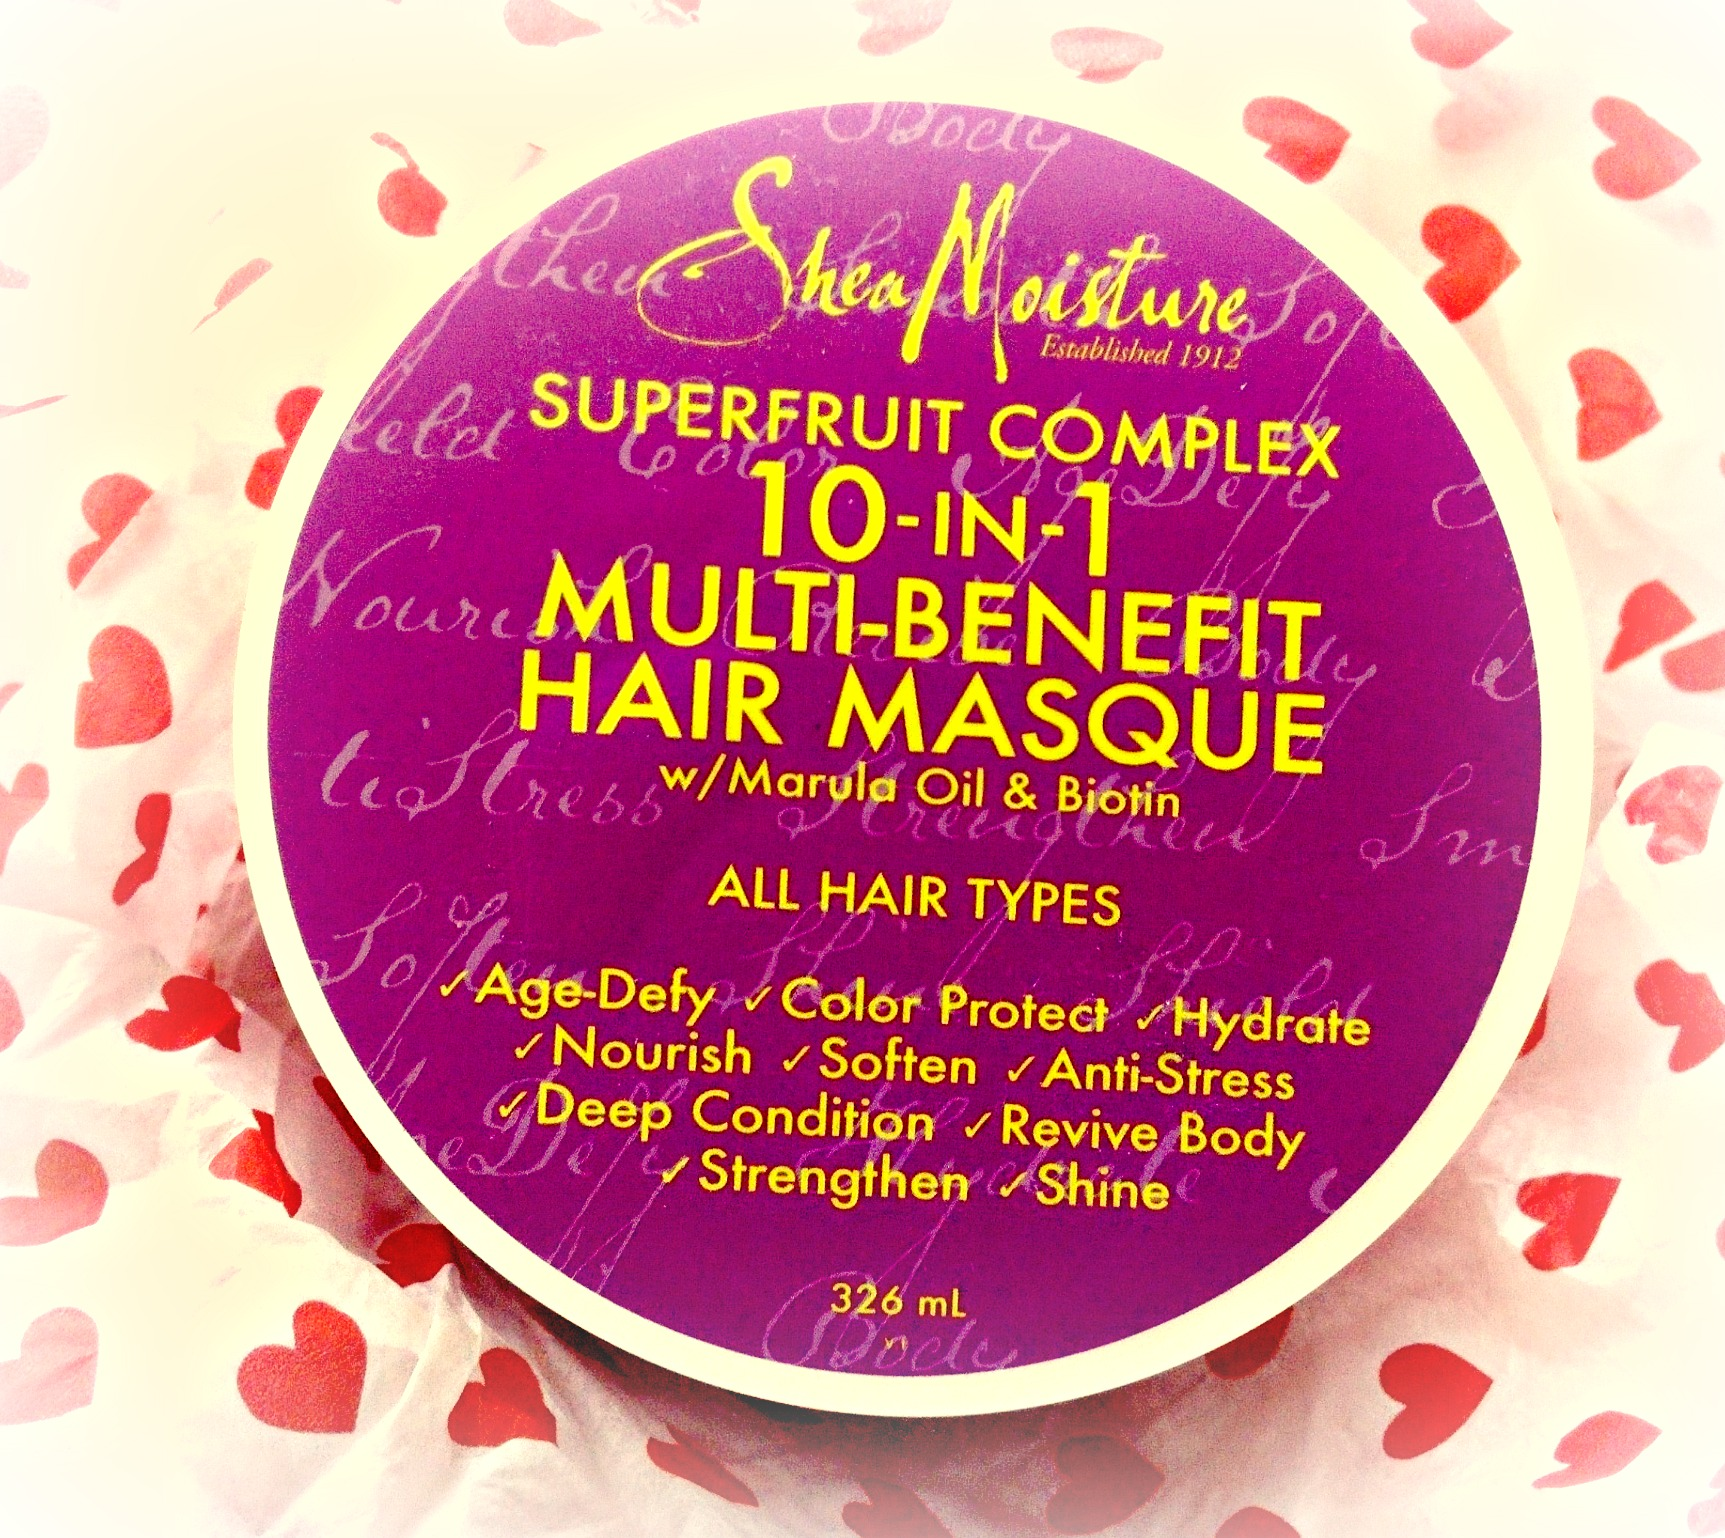 Shea Moisture Superfruit Complex 10-in-1 Multi-Benefit Hair Masque with Marula Oil and Biotin